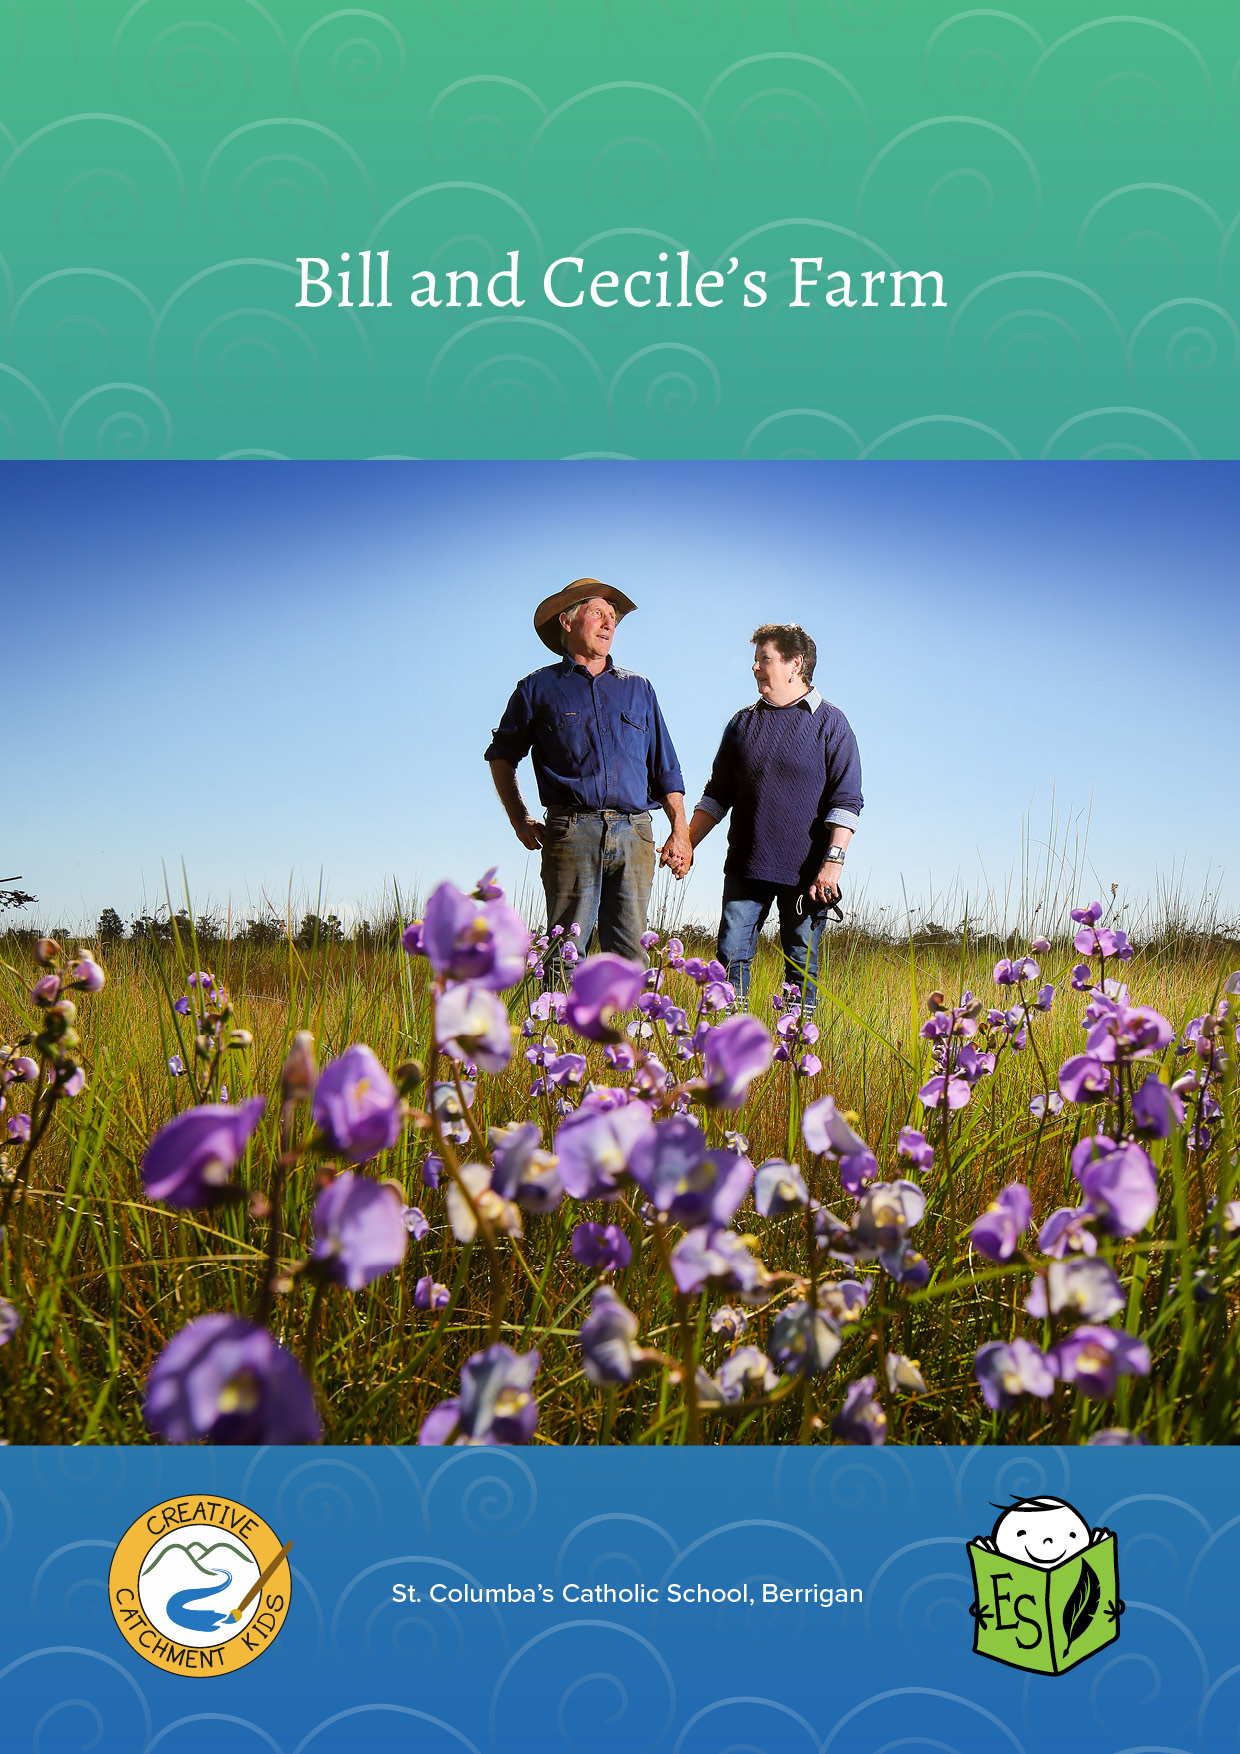 Bill and Cecile's Farm